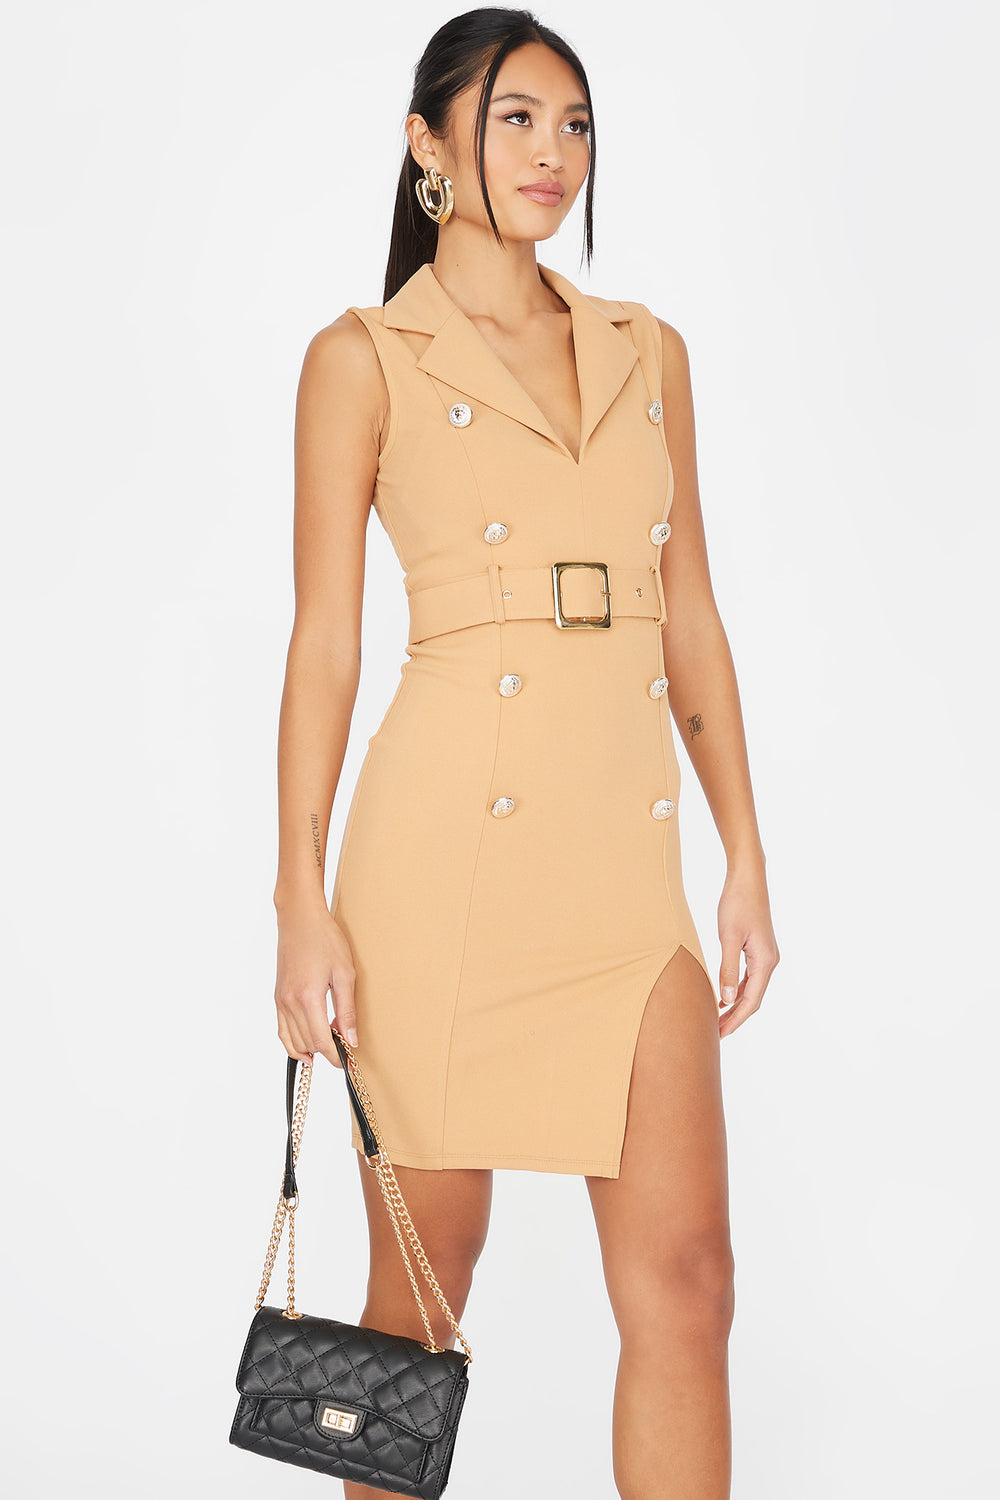 V-Neck Double Breasted Belted Sleeveless Dress Light Brown